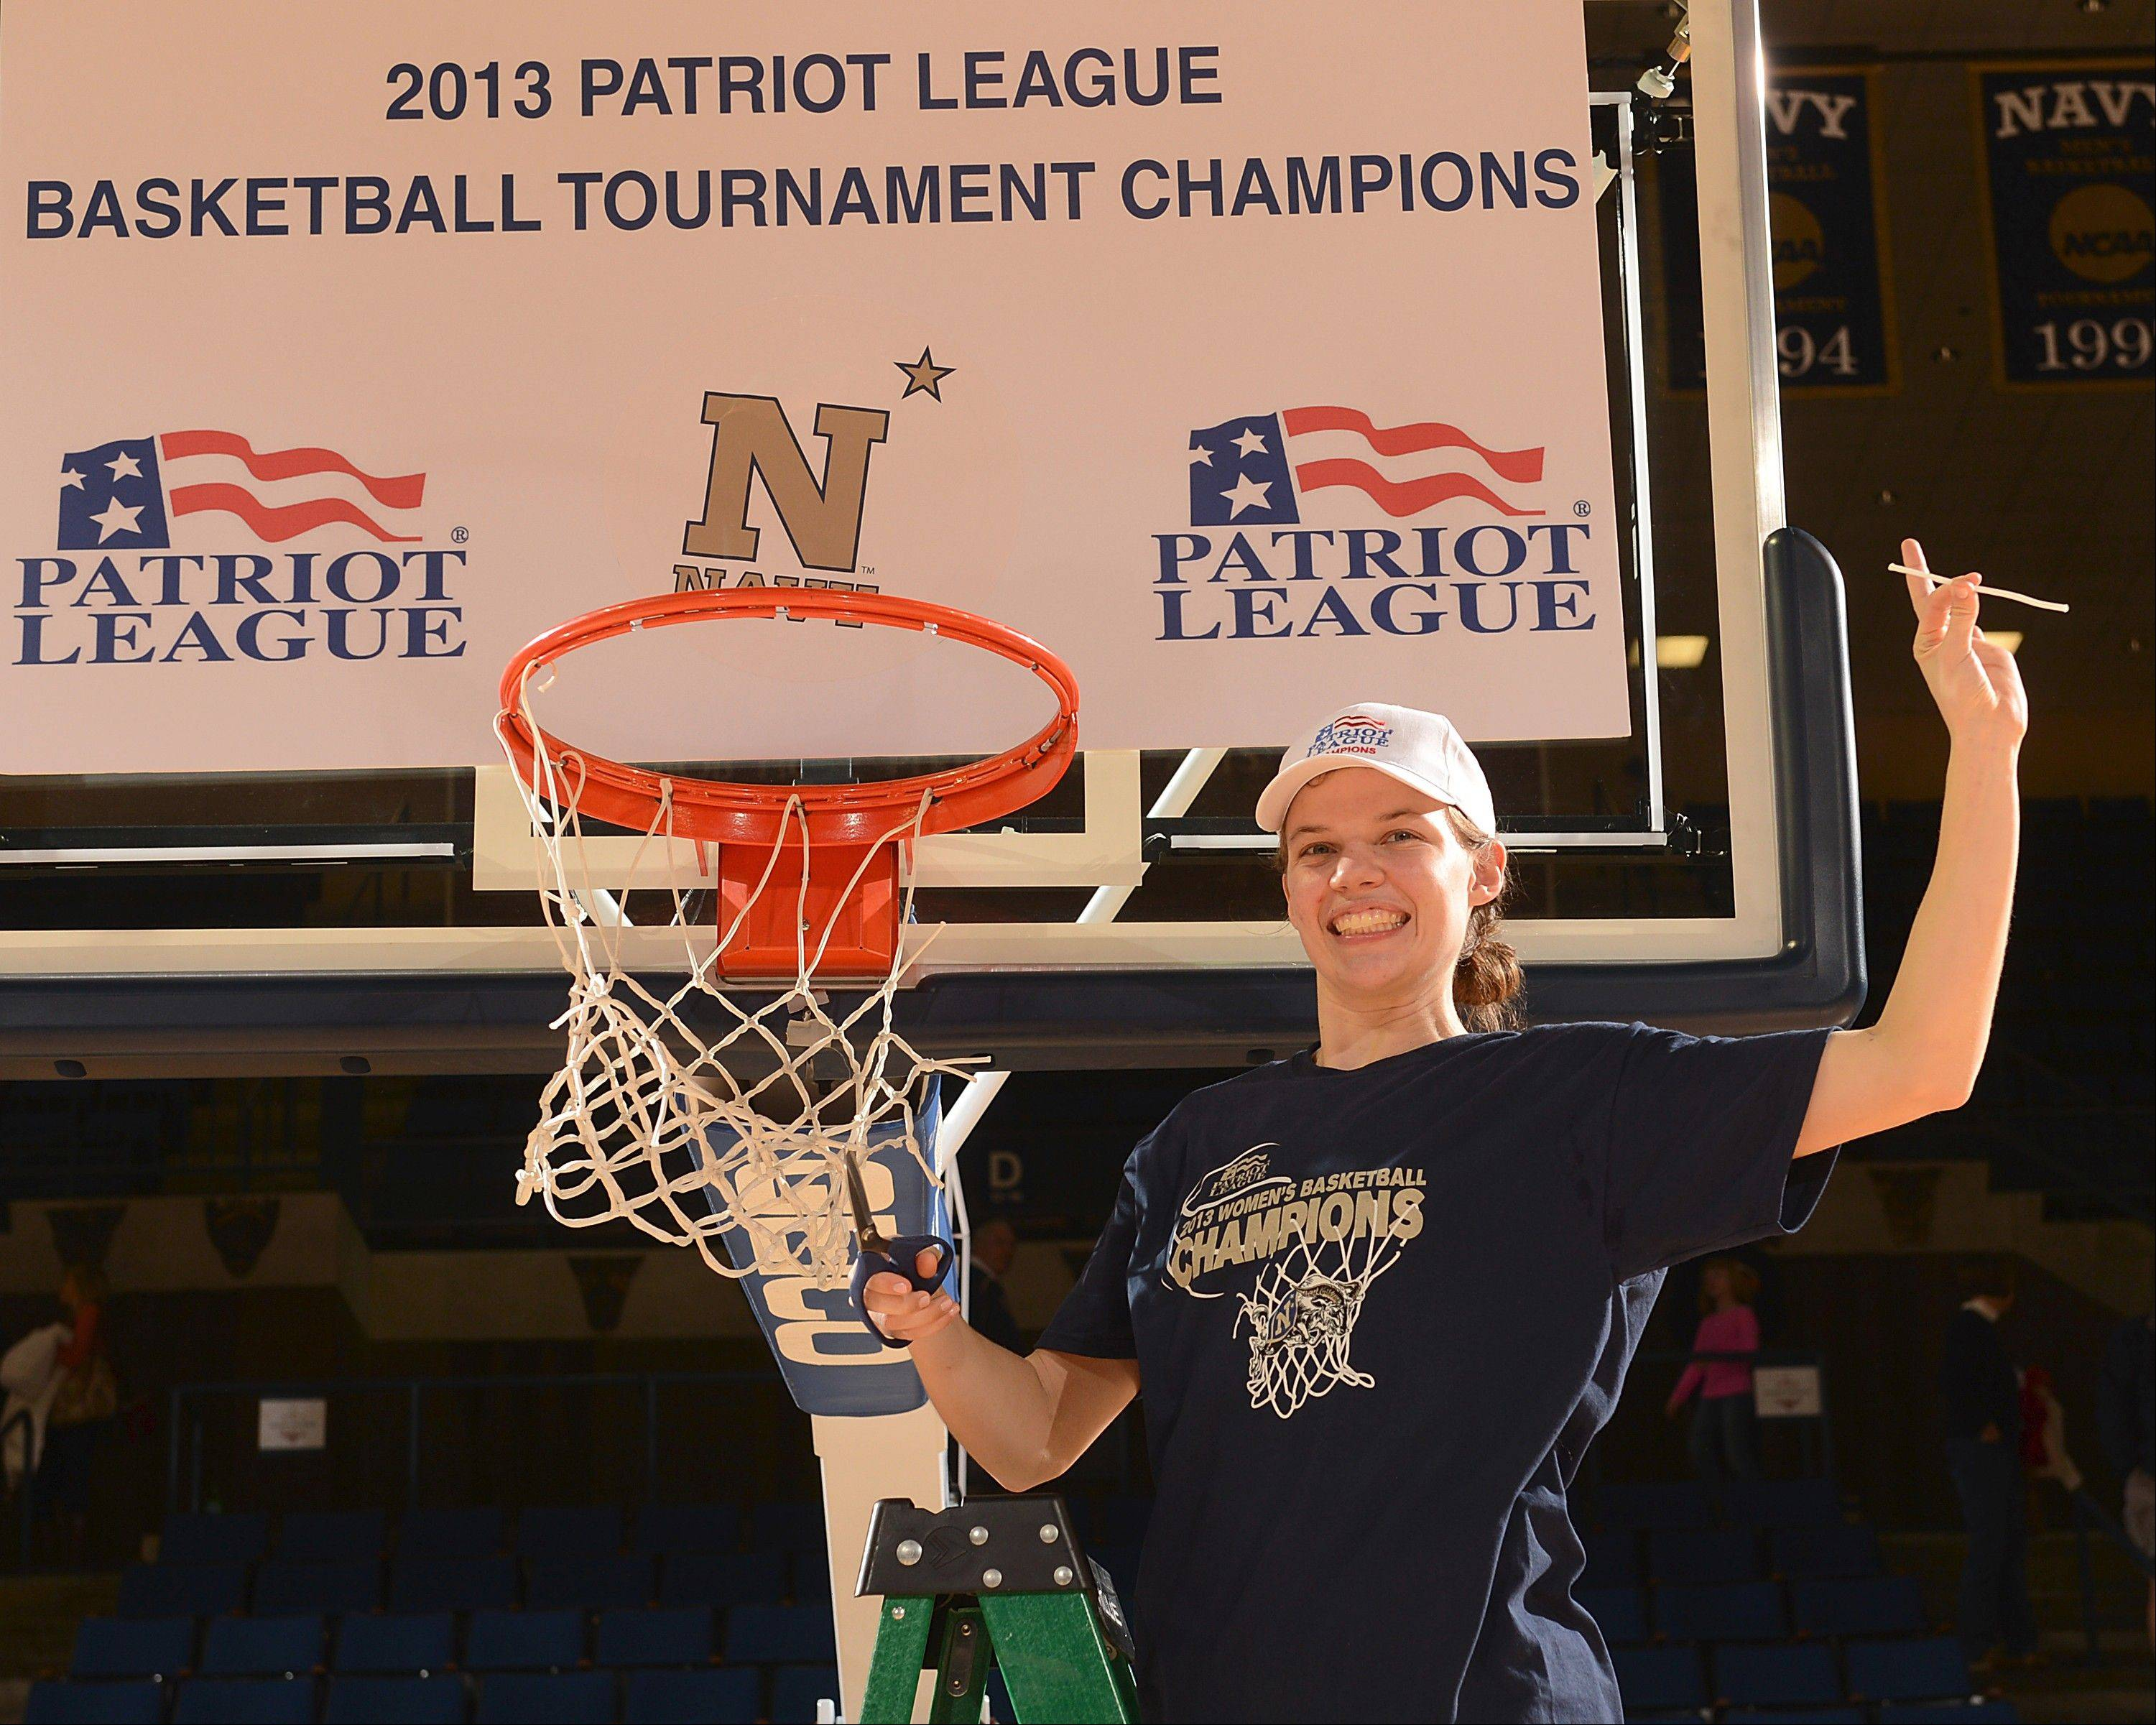 Former Lake Zurich basketball star Audrey Bauer celebrates after helping her Navy team win the Patriot League tourament last season. They are favored to repeat this season.